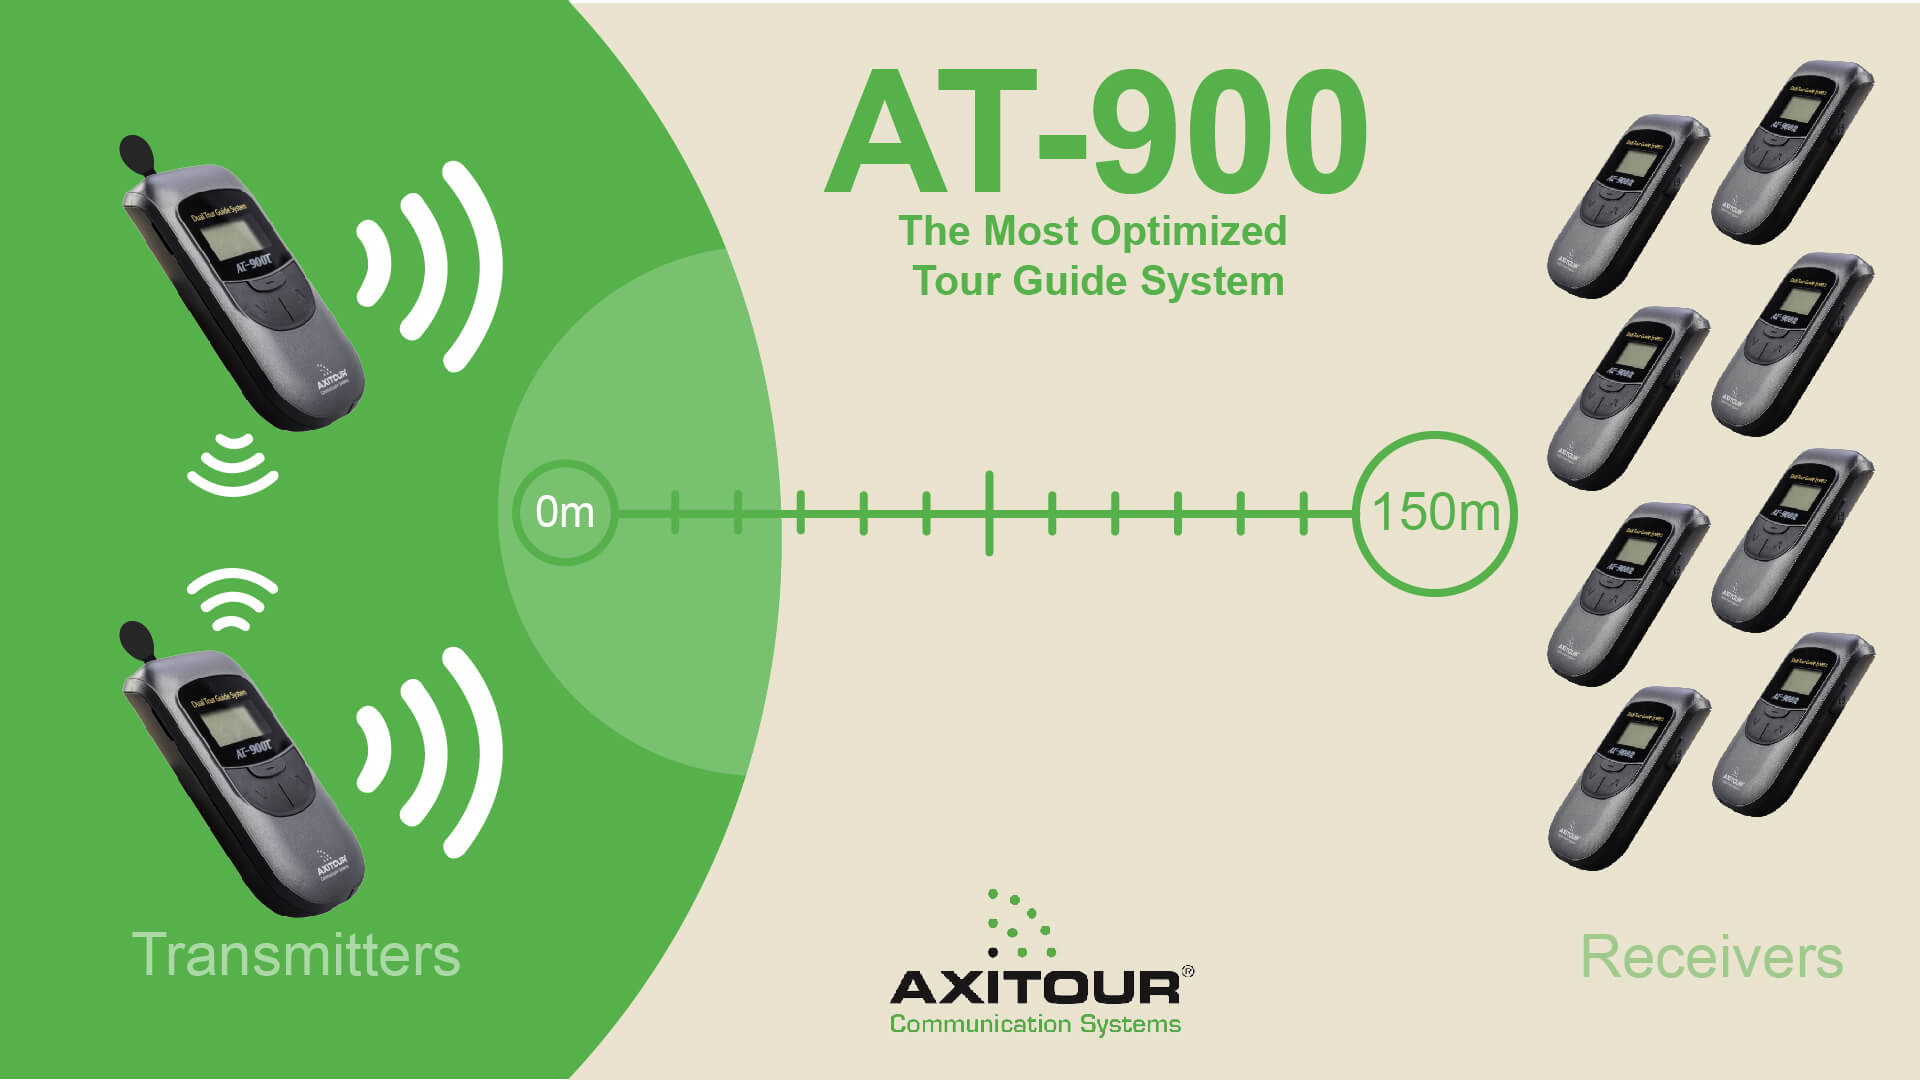 axitour-at-900-duplex-guide-communication-audio-communication-system